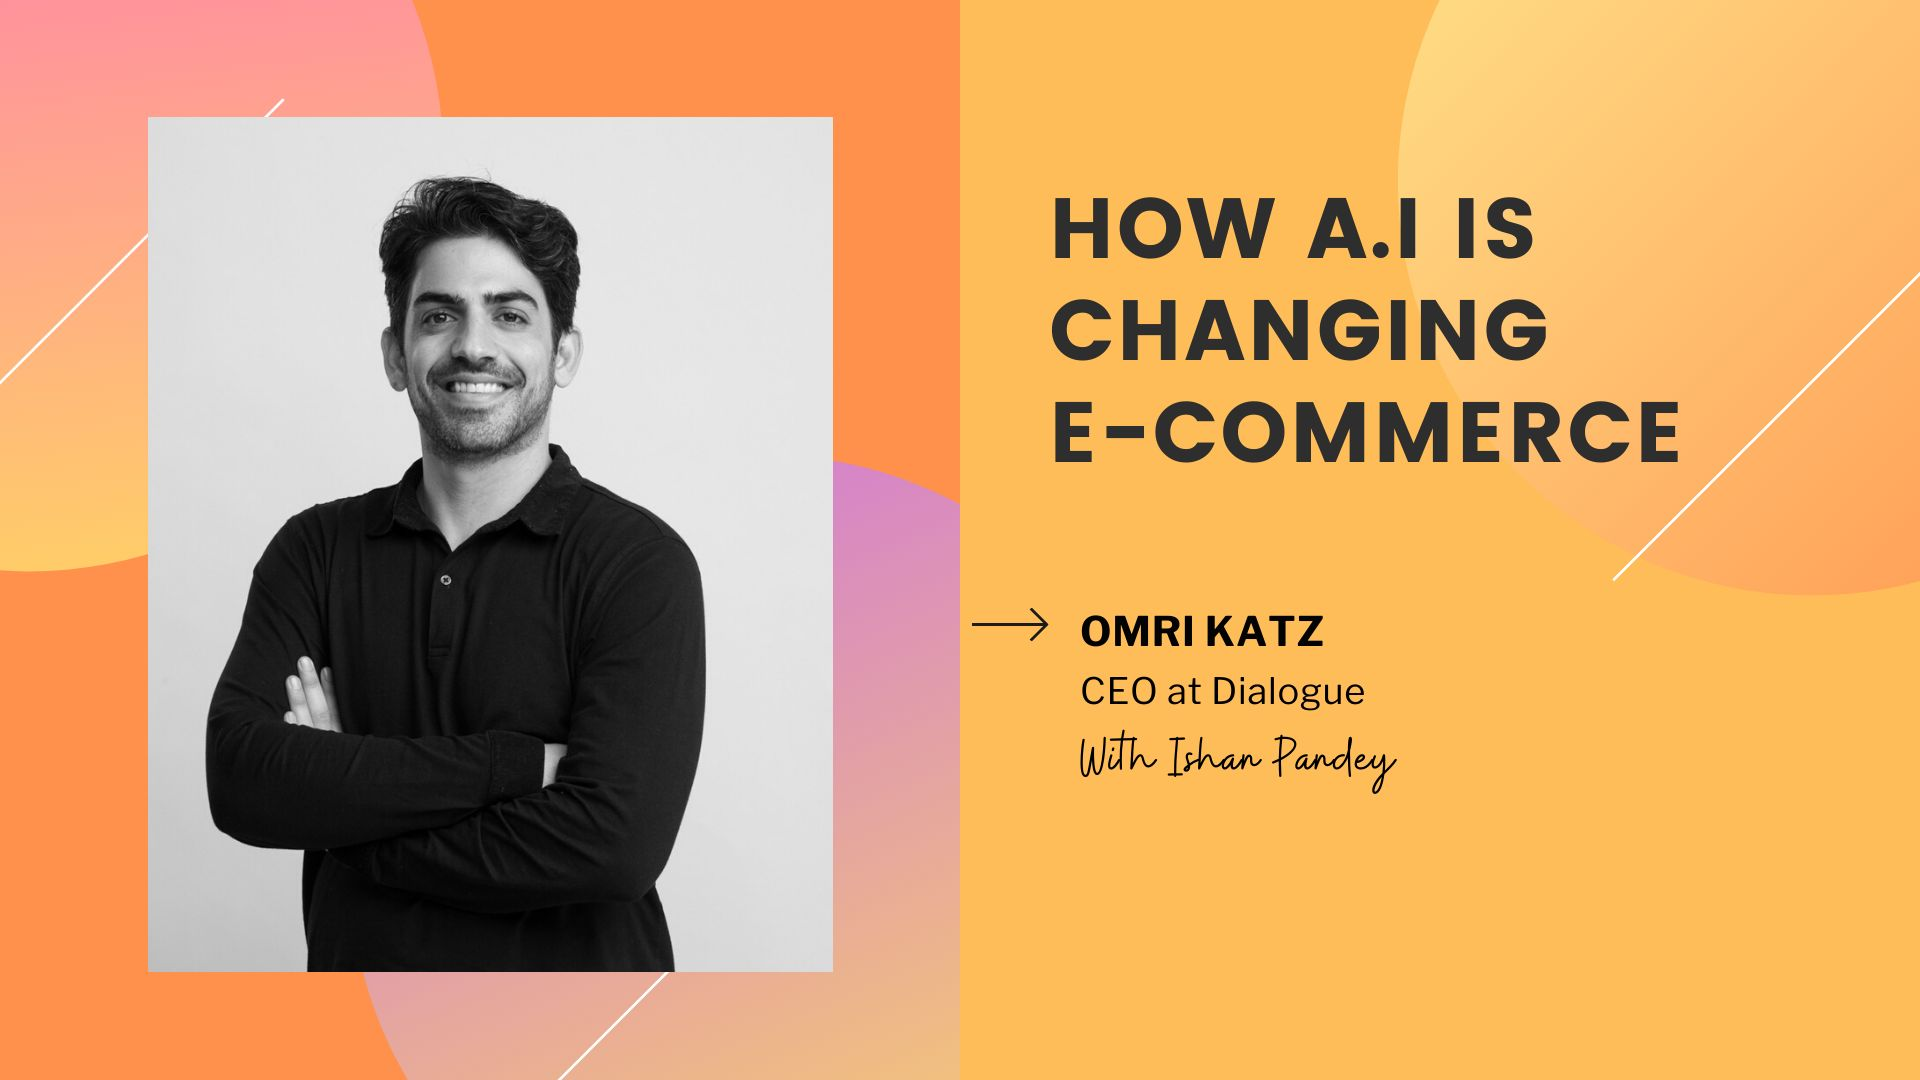 /how-ai-is-changing-user-shopping-experience-with-omri-katz-021s34ep feature image